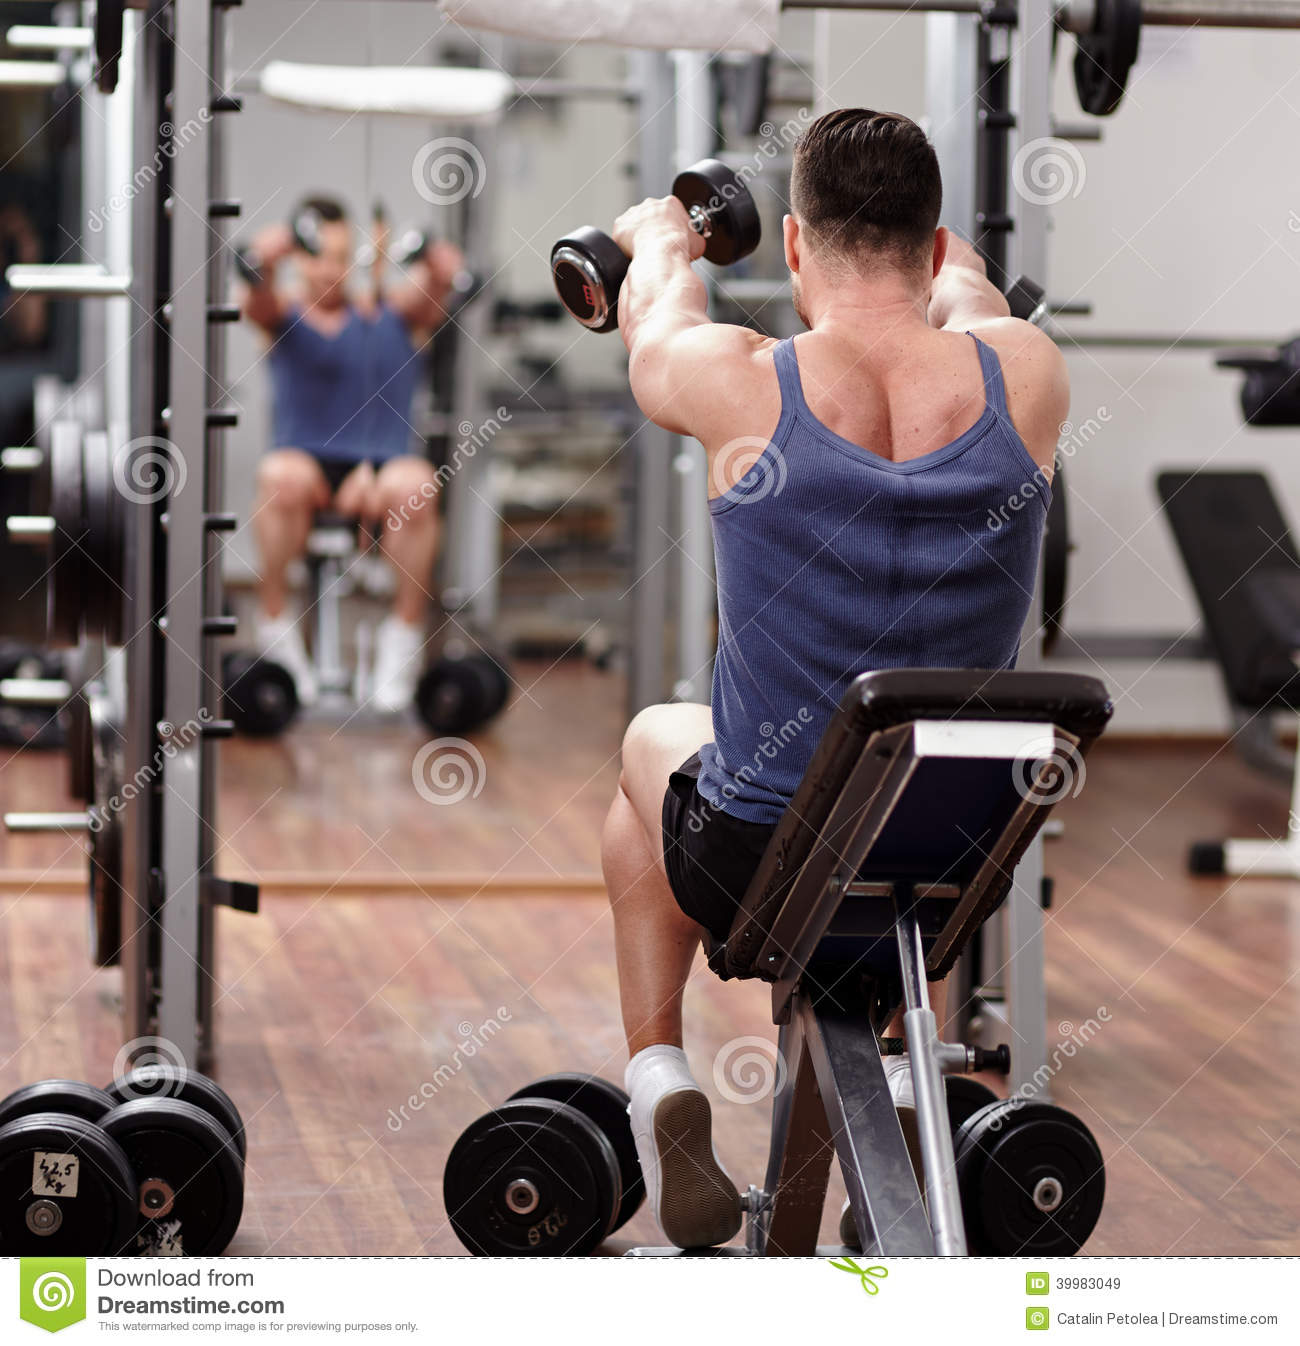 Working Out: Man Working Out In Front Of The Mirror Stock Photo